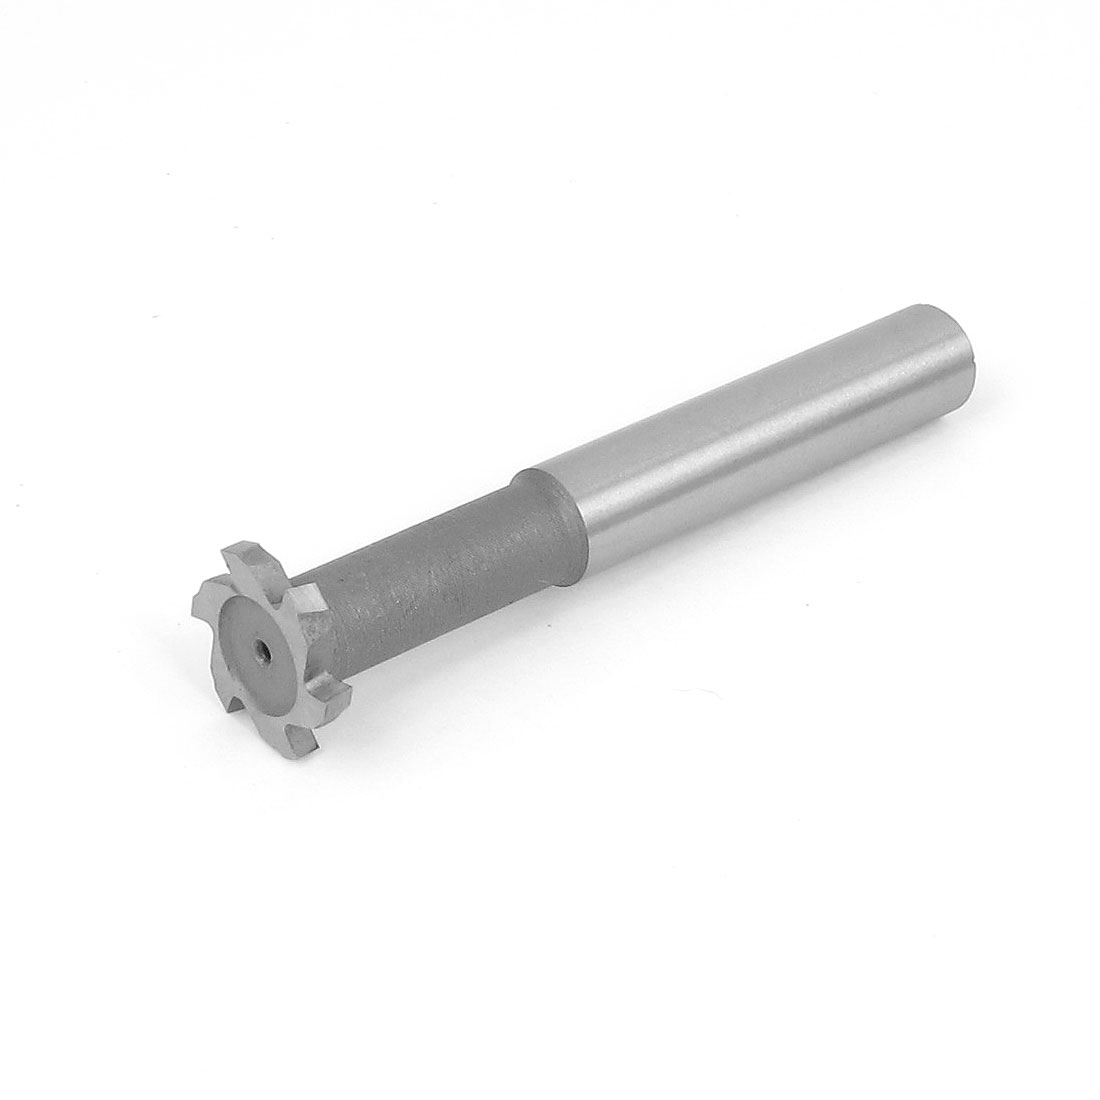 20mm Cutting Dia 3mm Depth 6 Flutes HSS-AL T Slot End Mill Milling Cutter